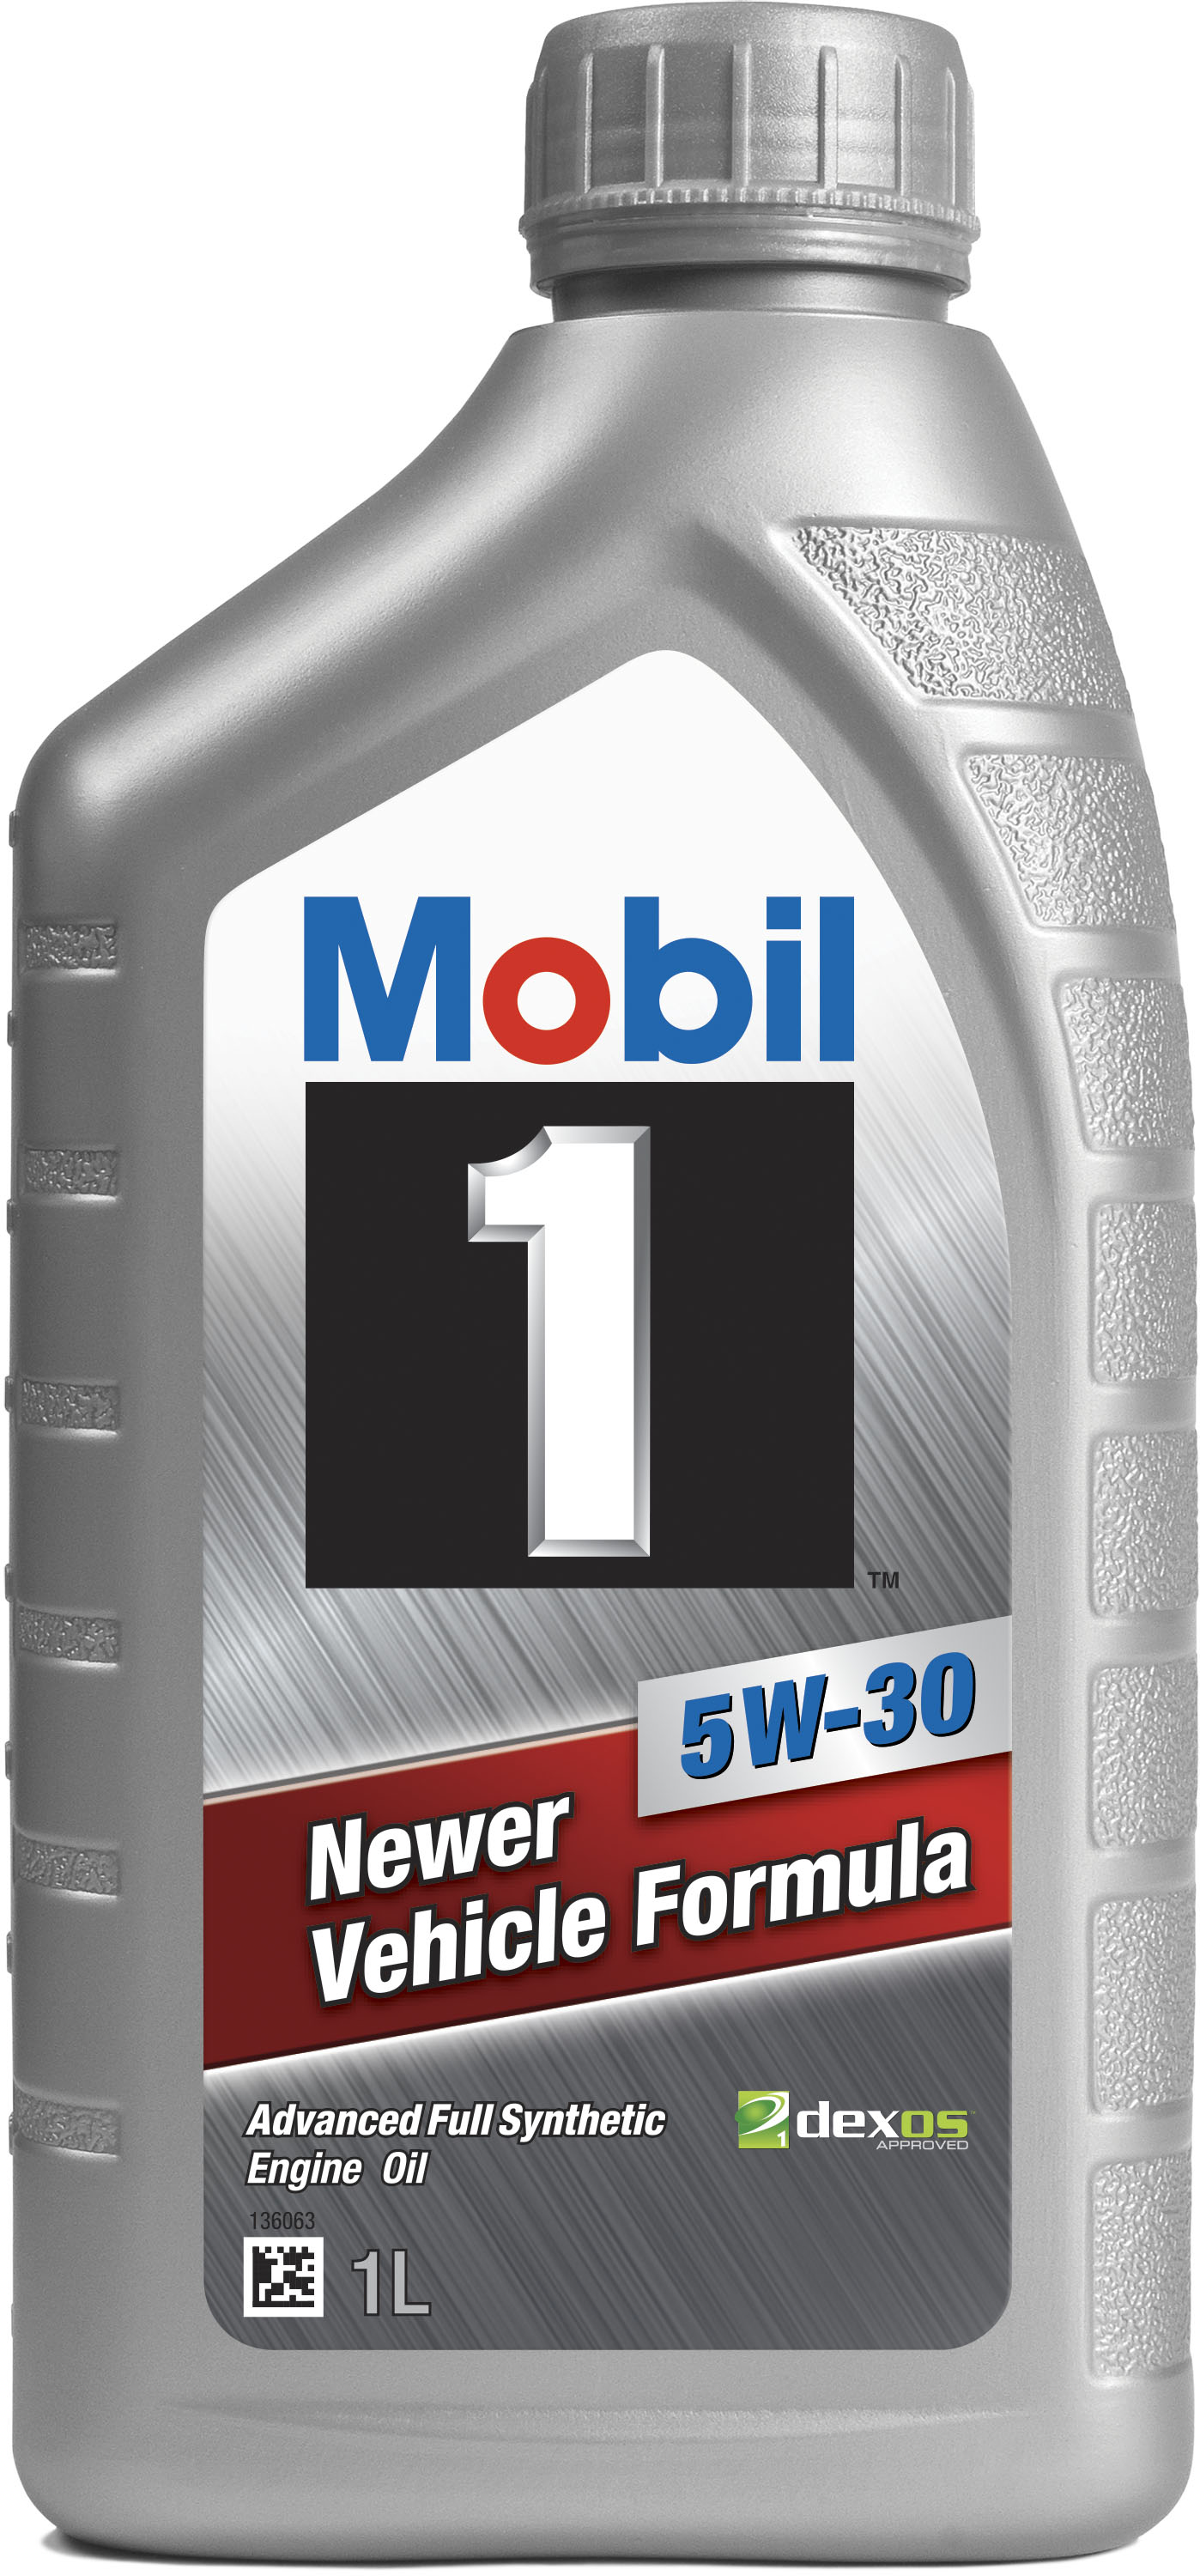 Mobil 1 Newer Vehicle Formula 5W30